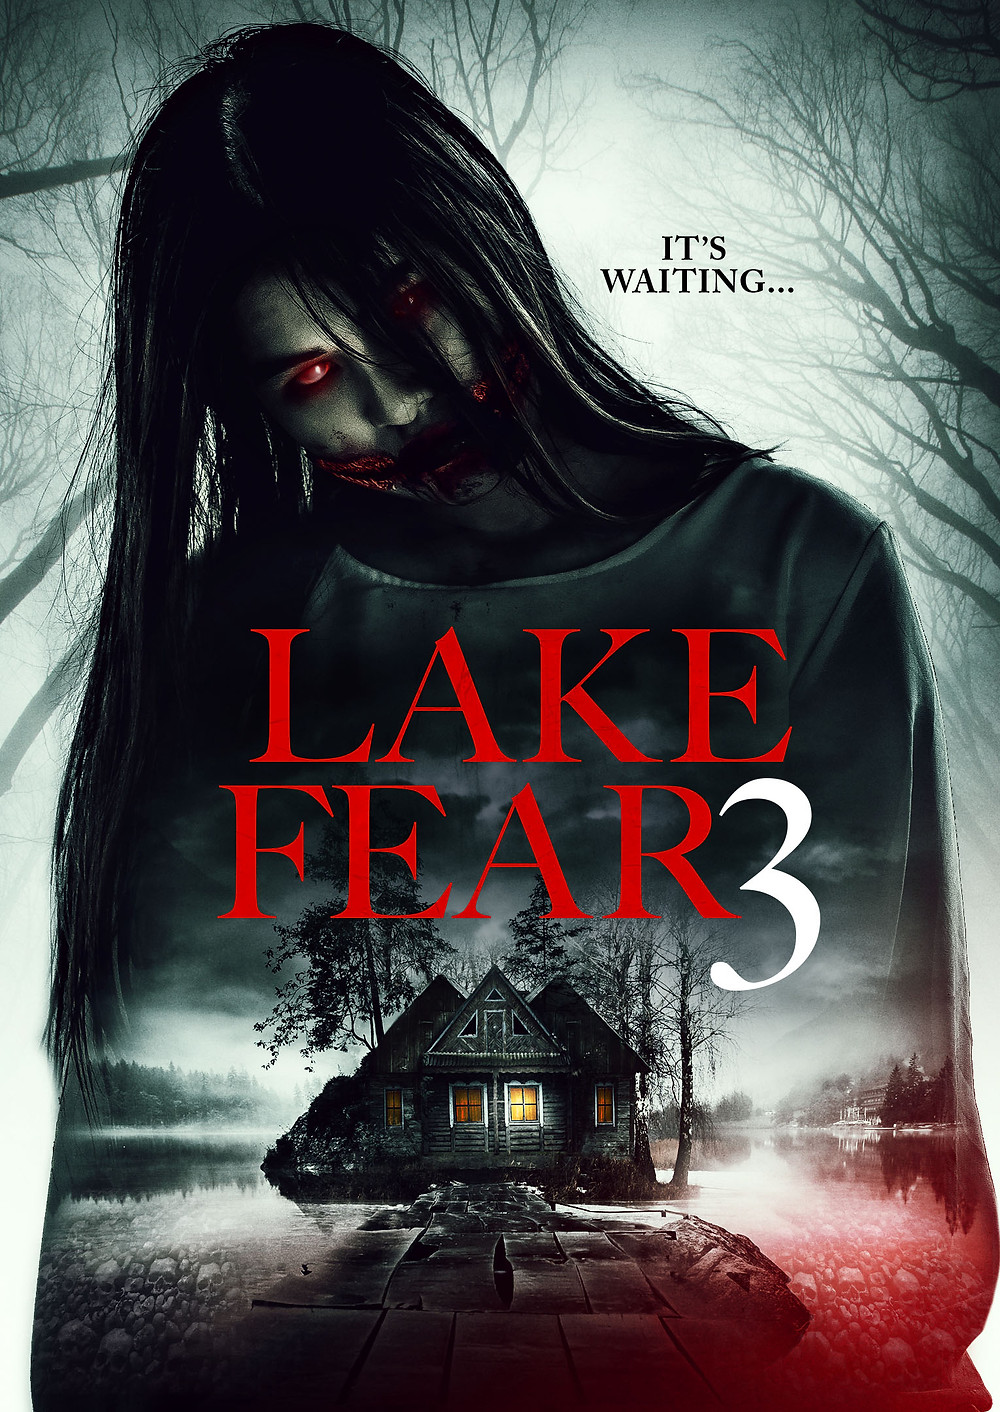 Poster for Lake Fear 3